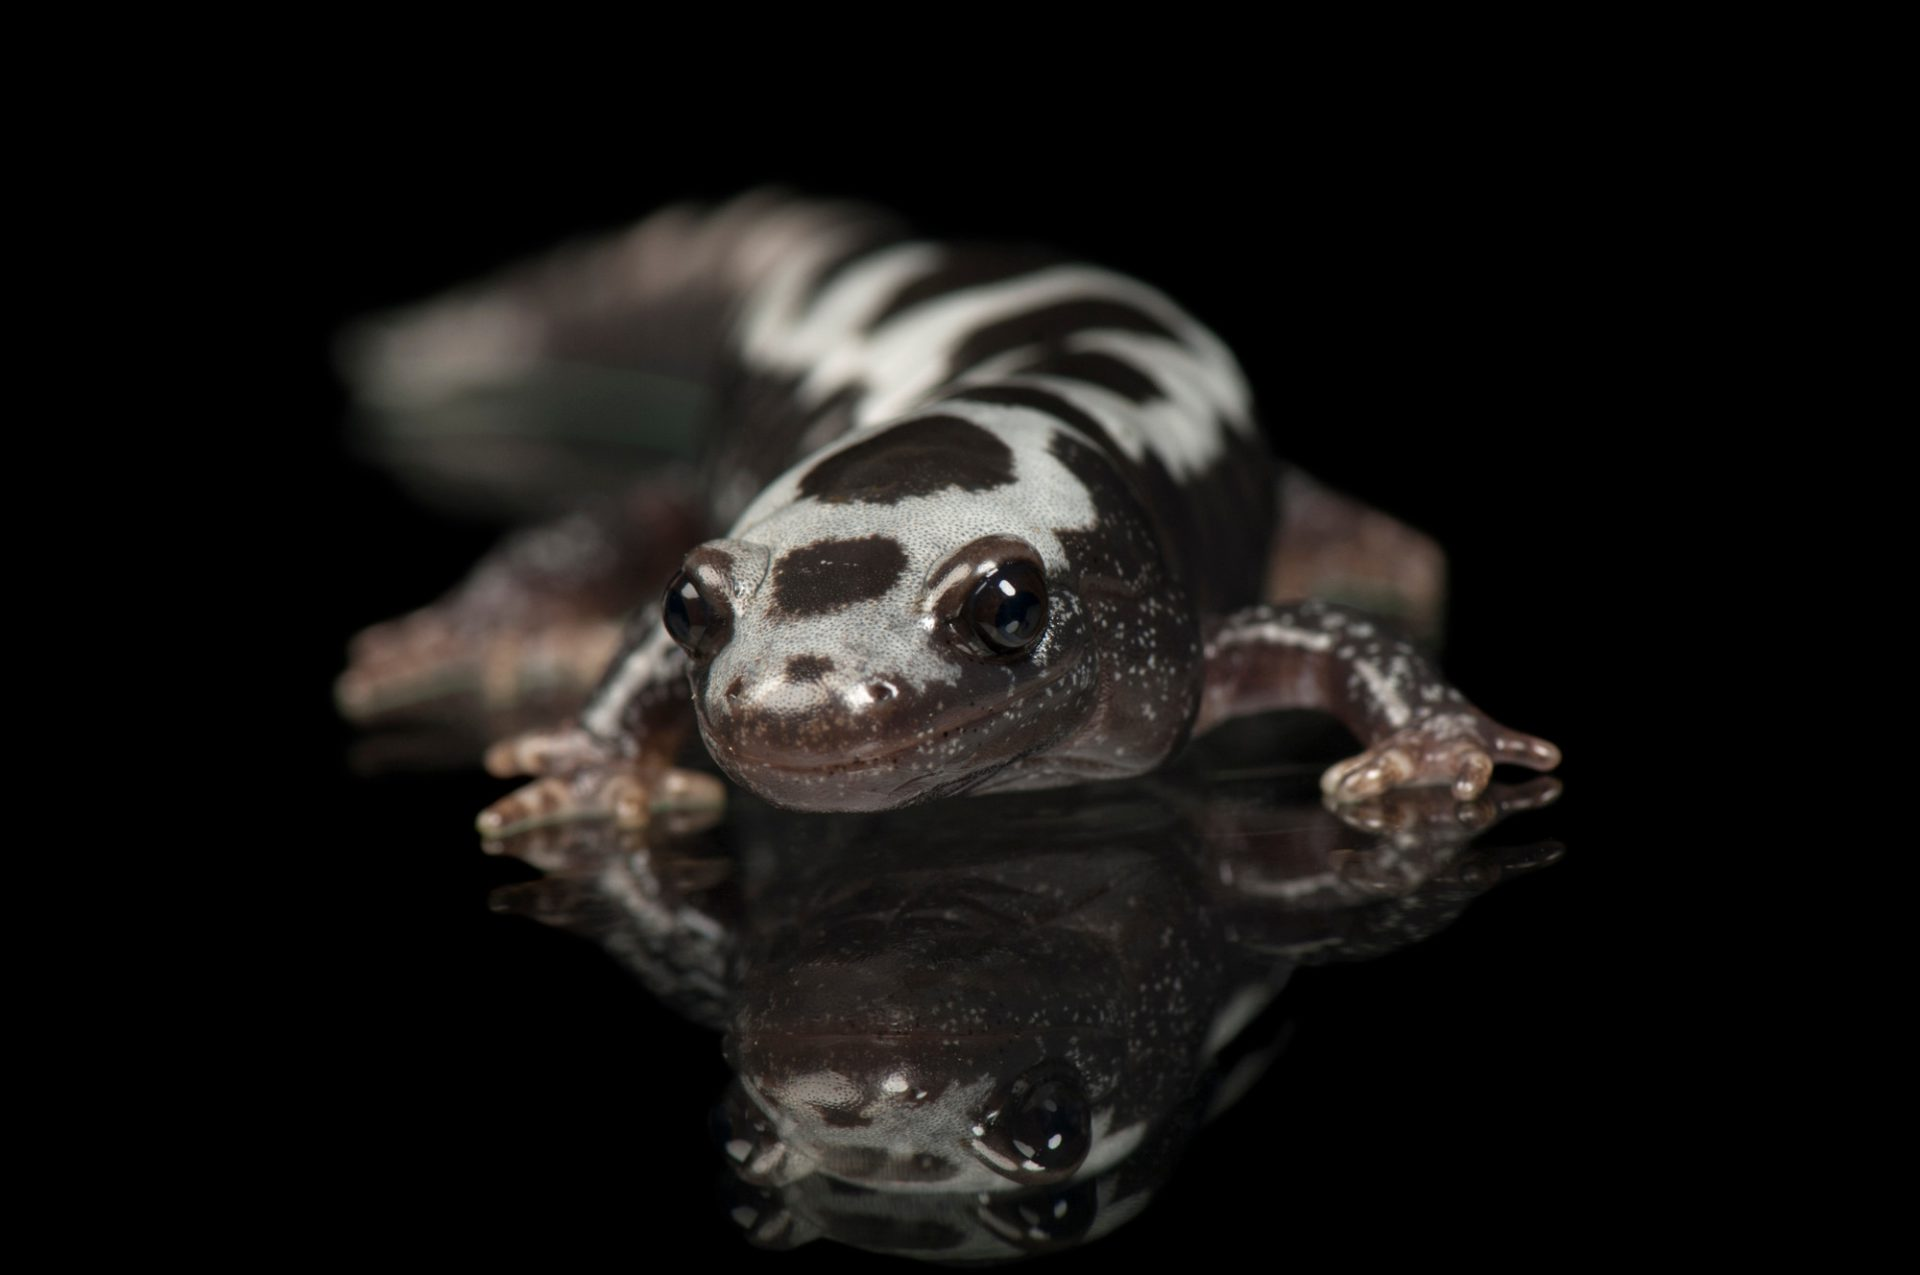 Marbled salamander (Ambystoma opacum) at the St. Louis Zoo.